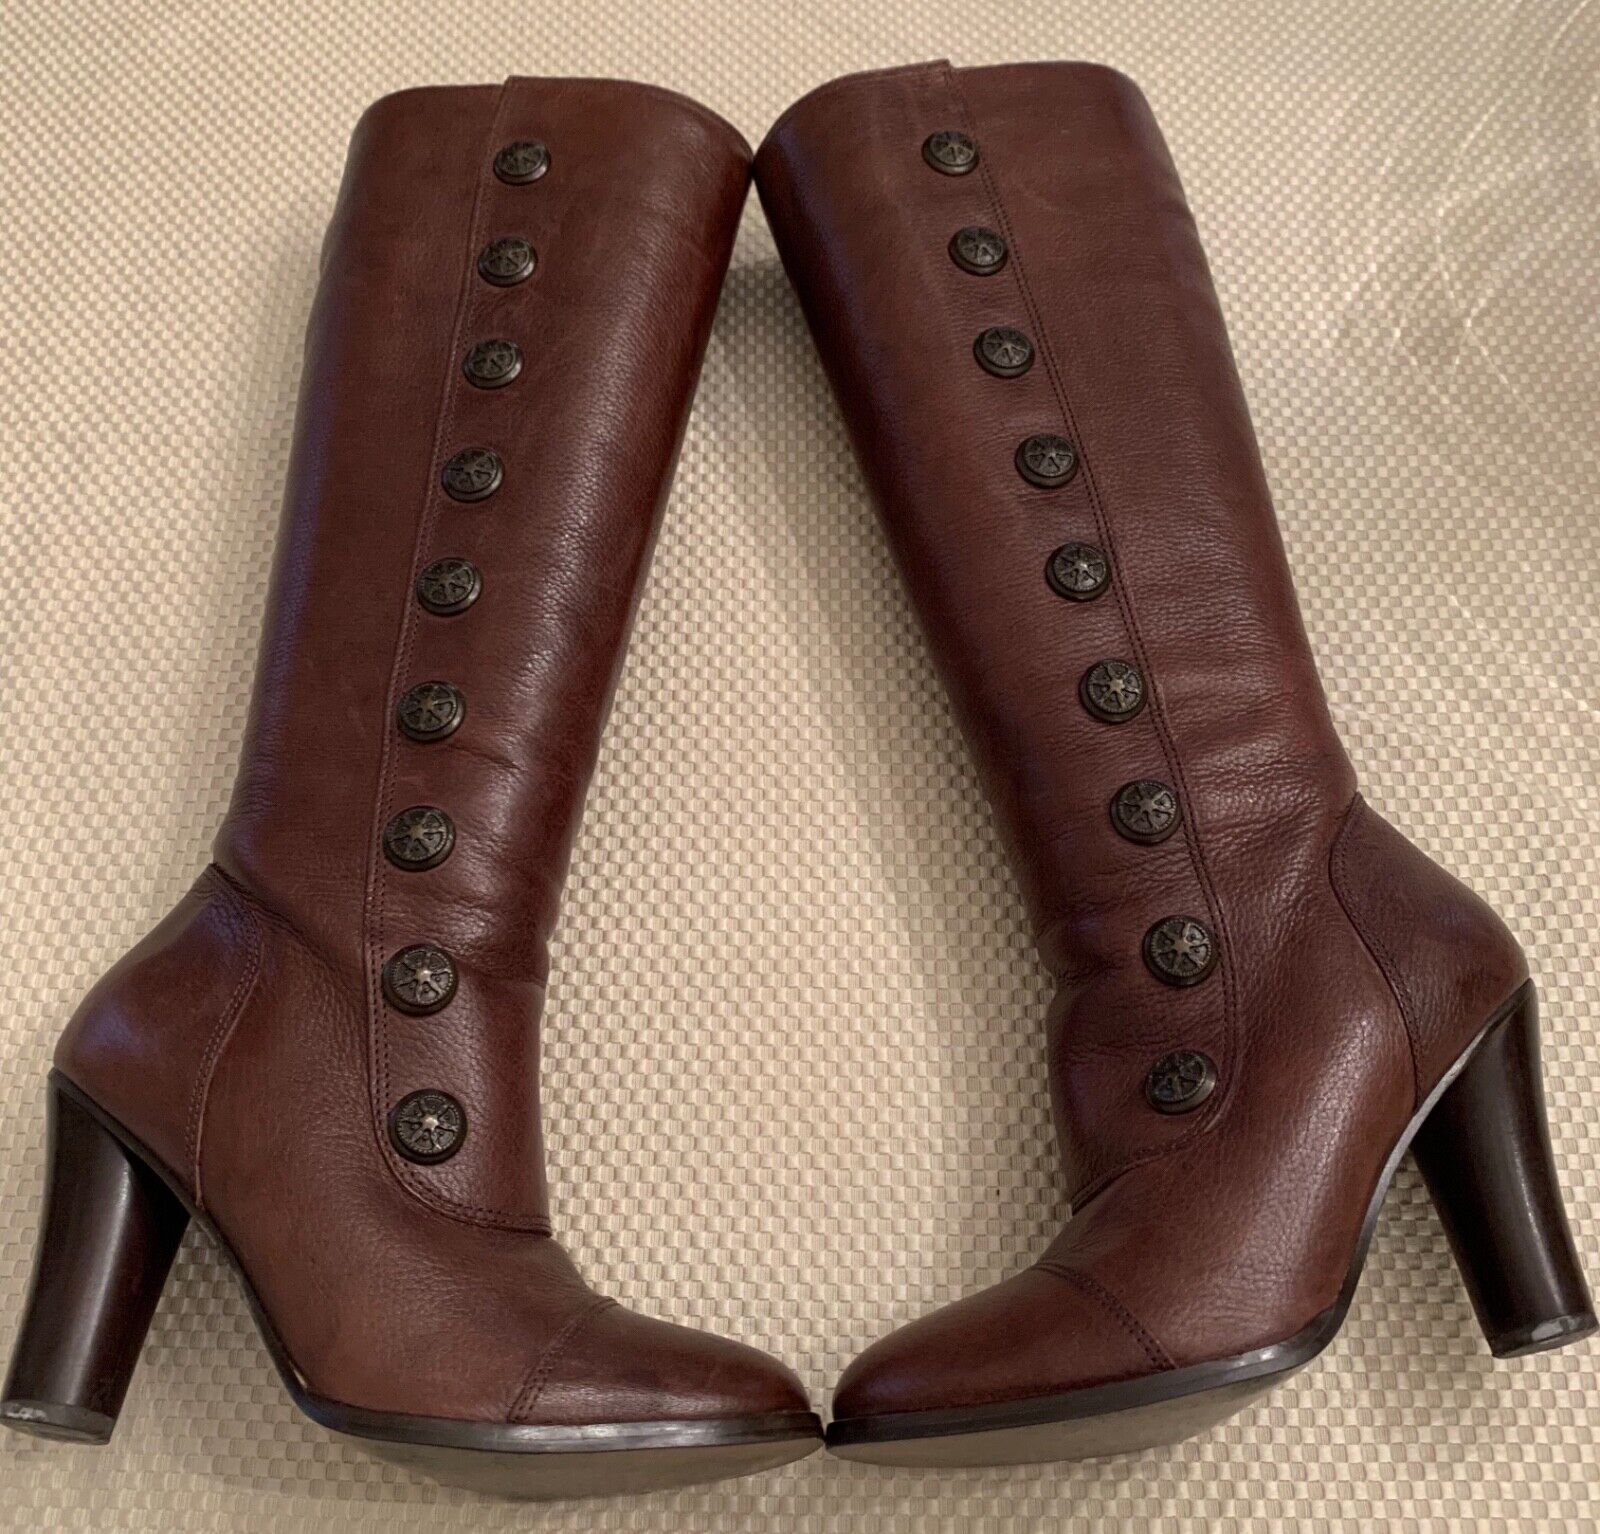 Matisse Brown Leather Button Women's Boots Size 6 M Knee-High Side Zip Round Toe